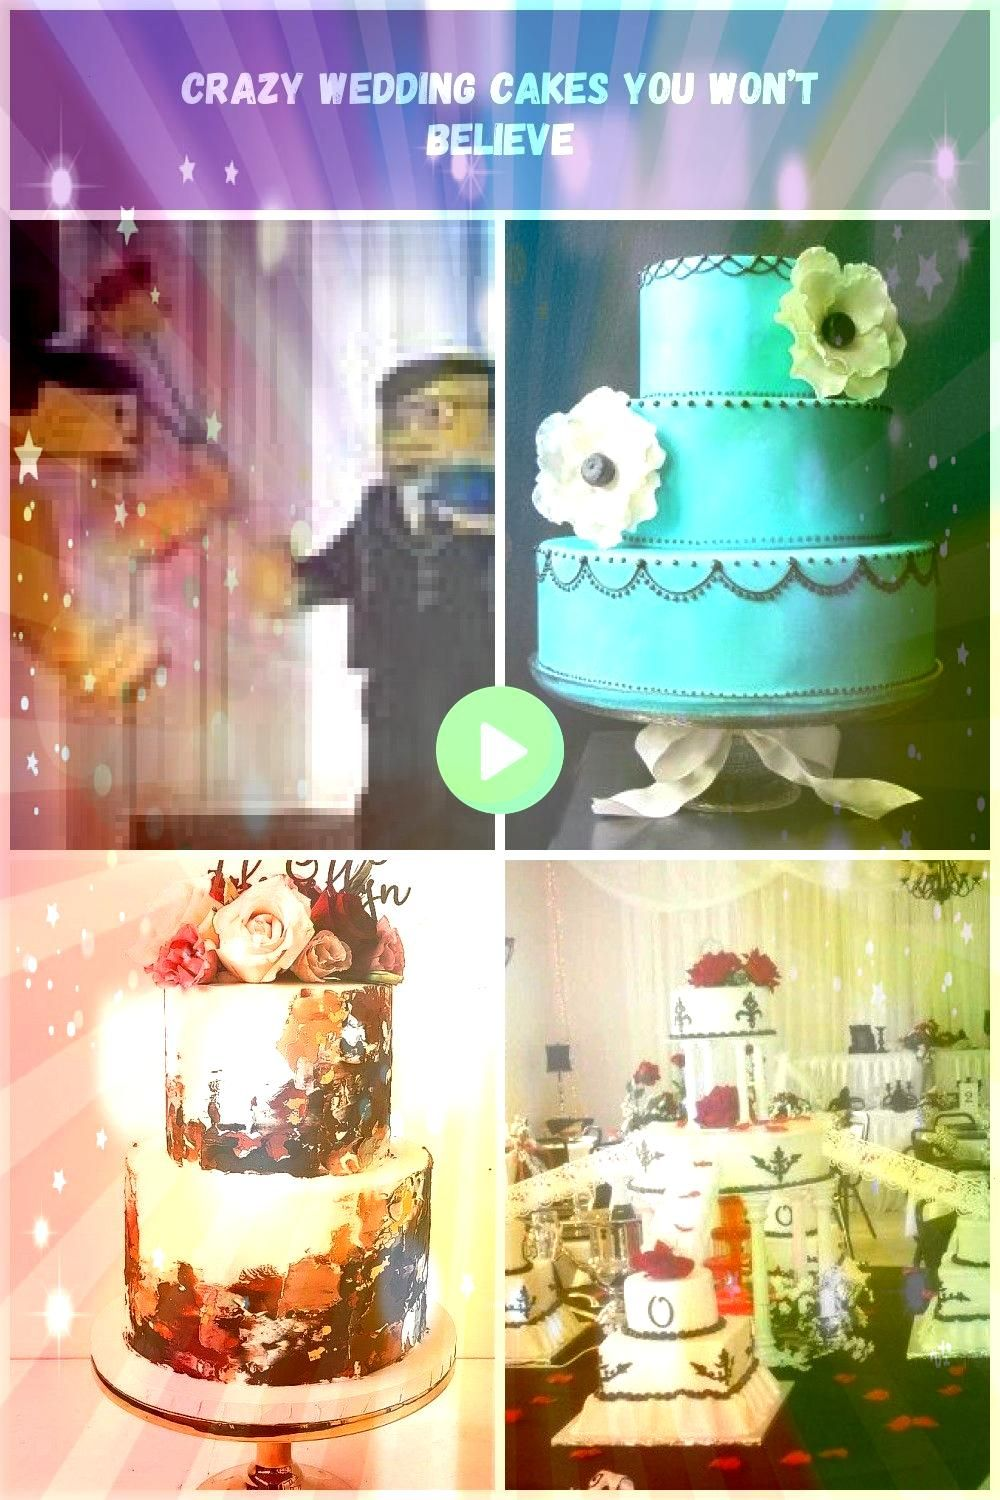 People Wedding Cake TheVine  The 100 most insane wedding cakes of all time  Life  pop culture untangledcakes crazy wedding cakesLego People Wedding Cake TheVine  The 100...